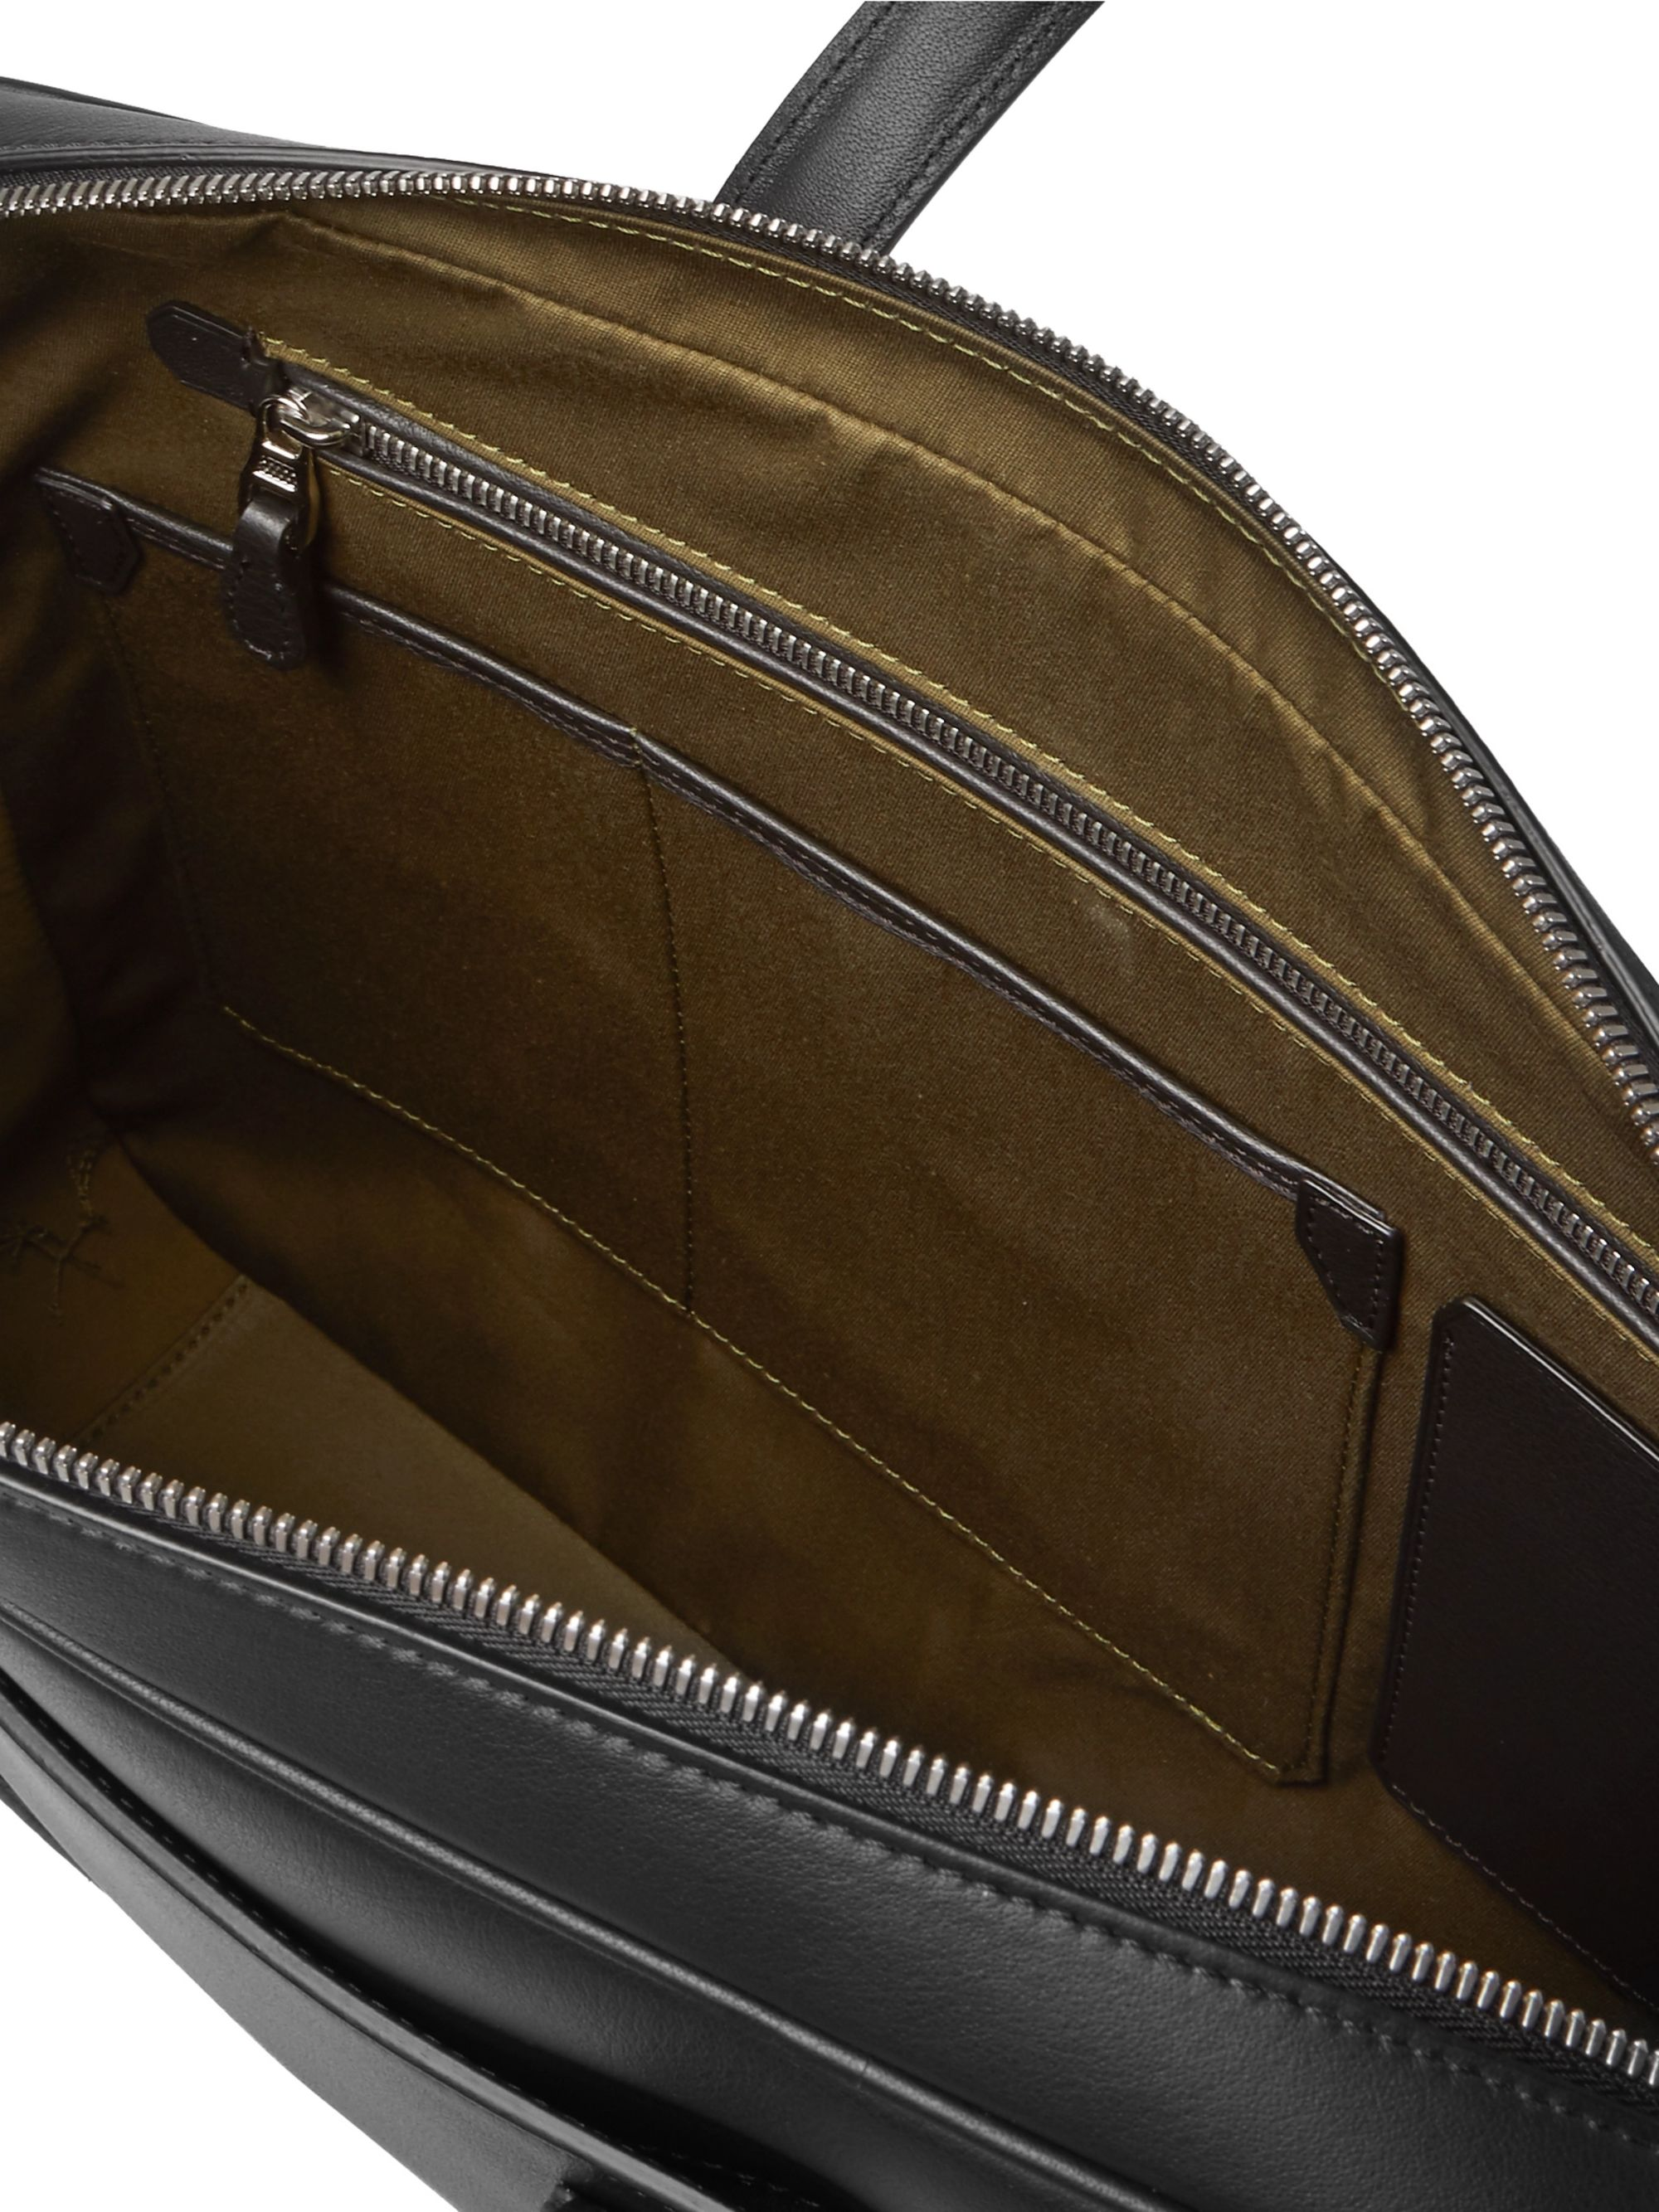 Dunhill Hampstead Leather Briefcase